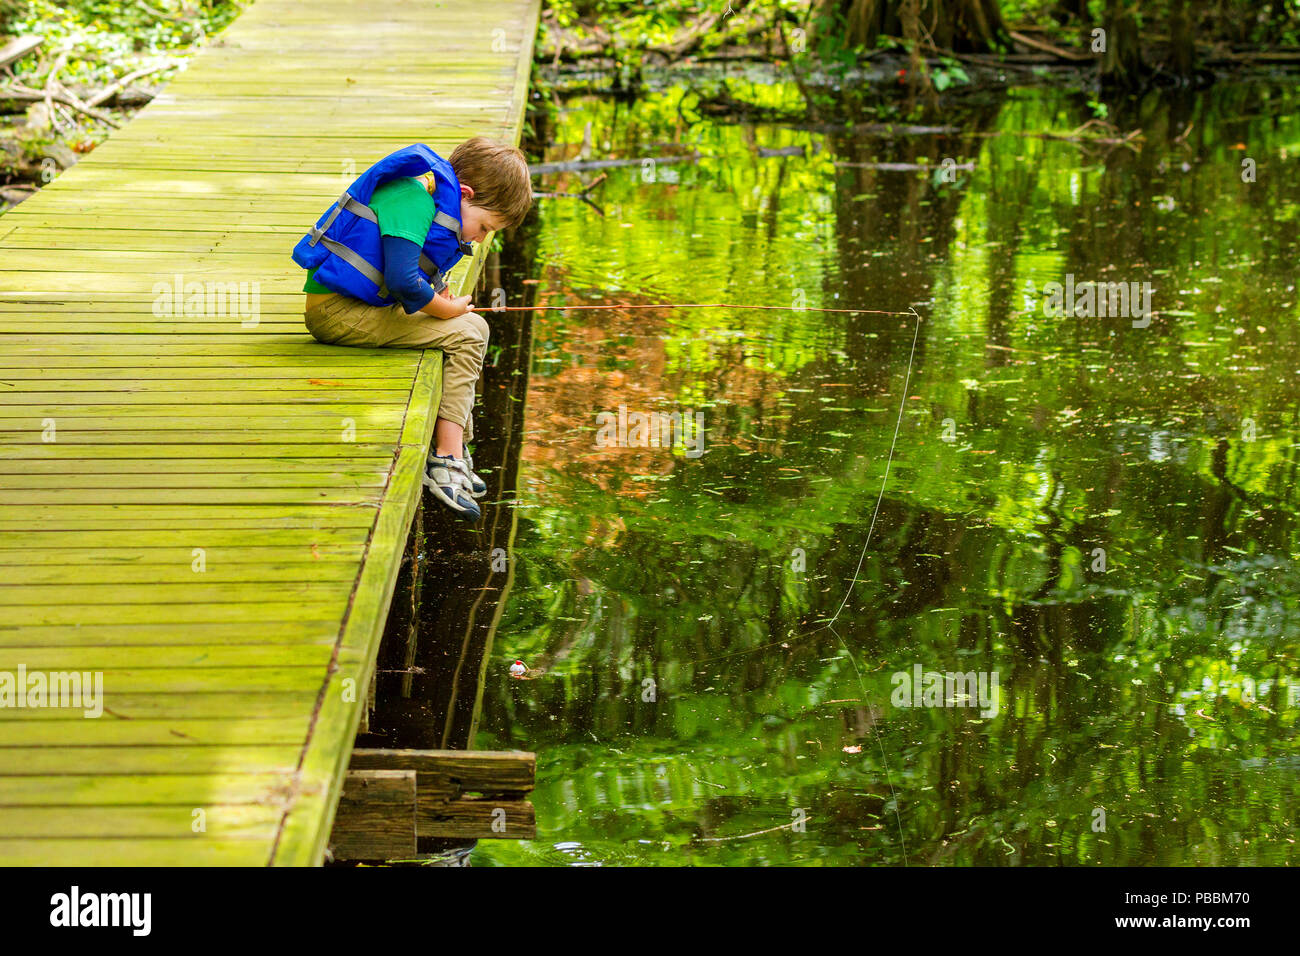 An impatient young, fishing boy stares at his still bobber, willing it to move, as he leans over the edge of the dock he is fishing from at Lake Bisti - Stock Image